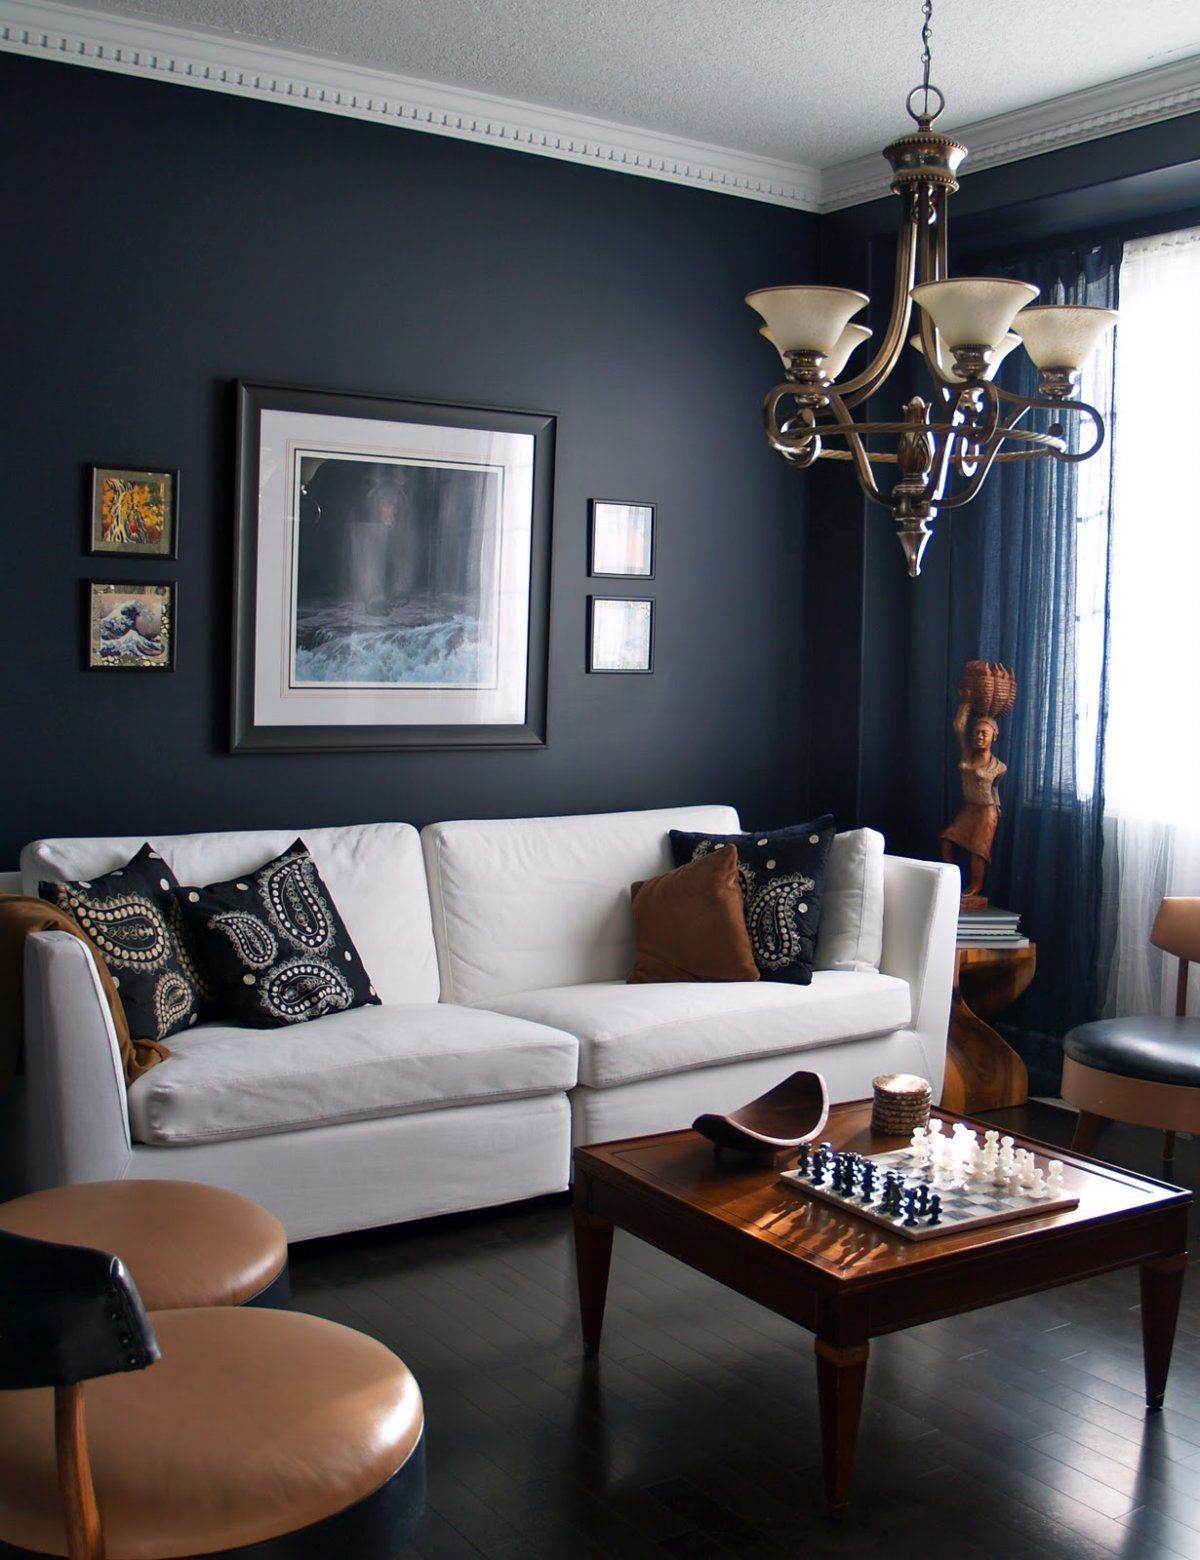 Blue living room design ideas - Living Rooms With Dark Navy Blue Walls With White Sofa And Classic Chandelier